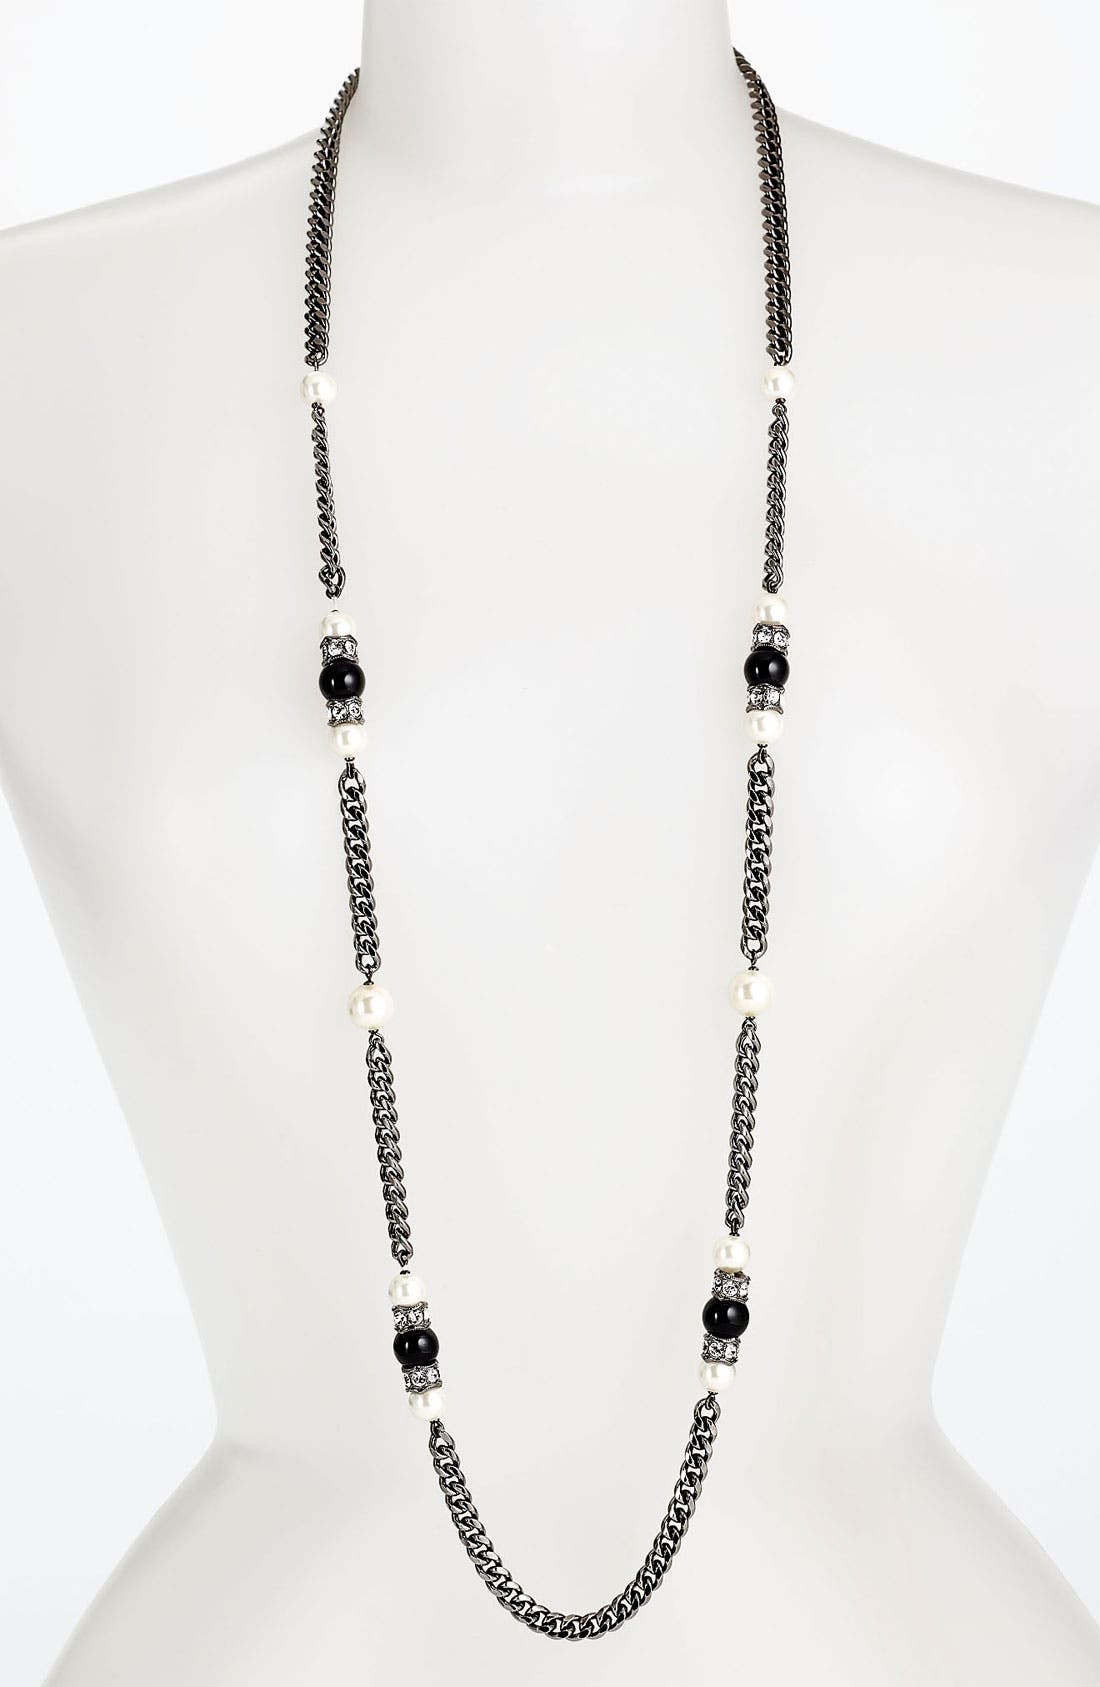 Main Image - Givenchy Long Station Necklace